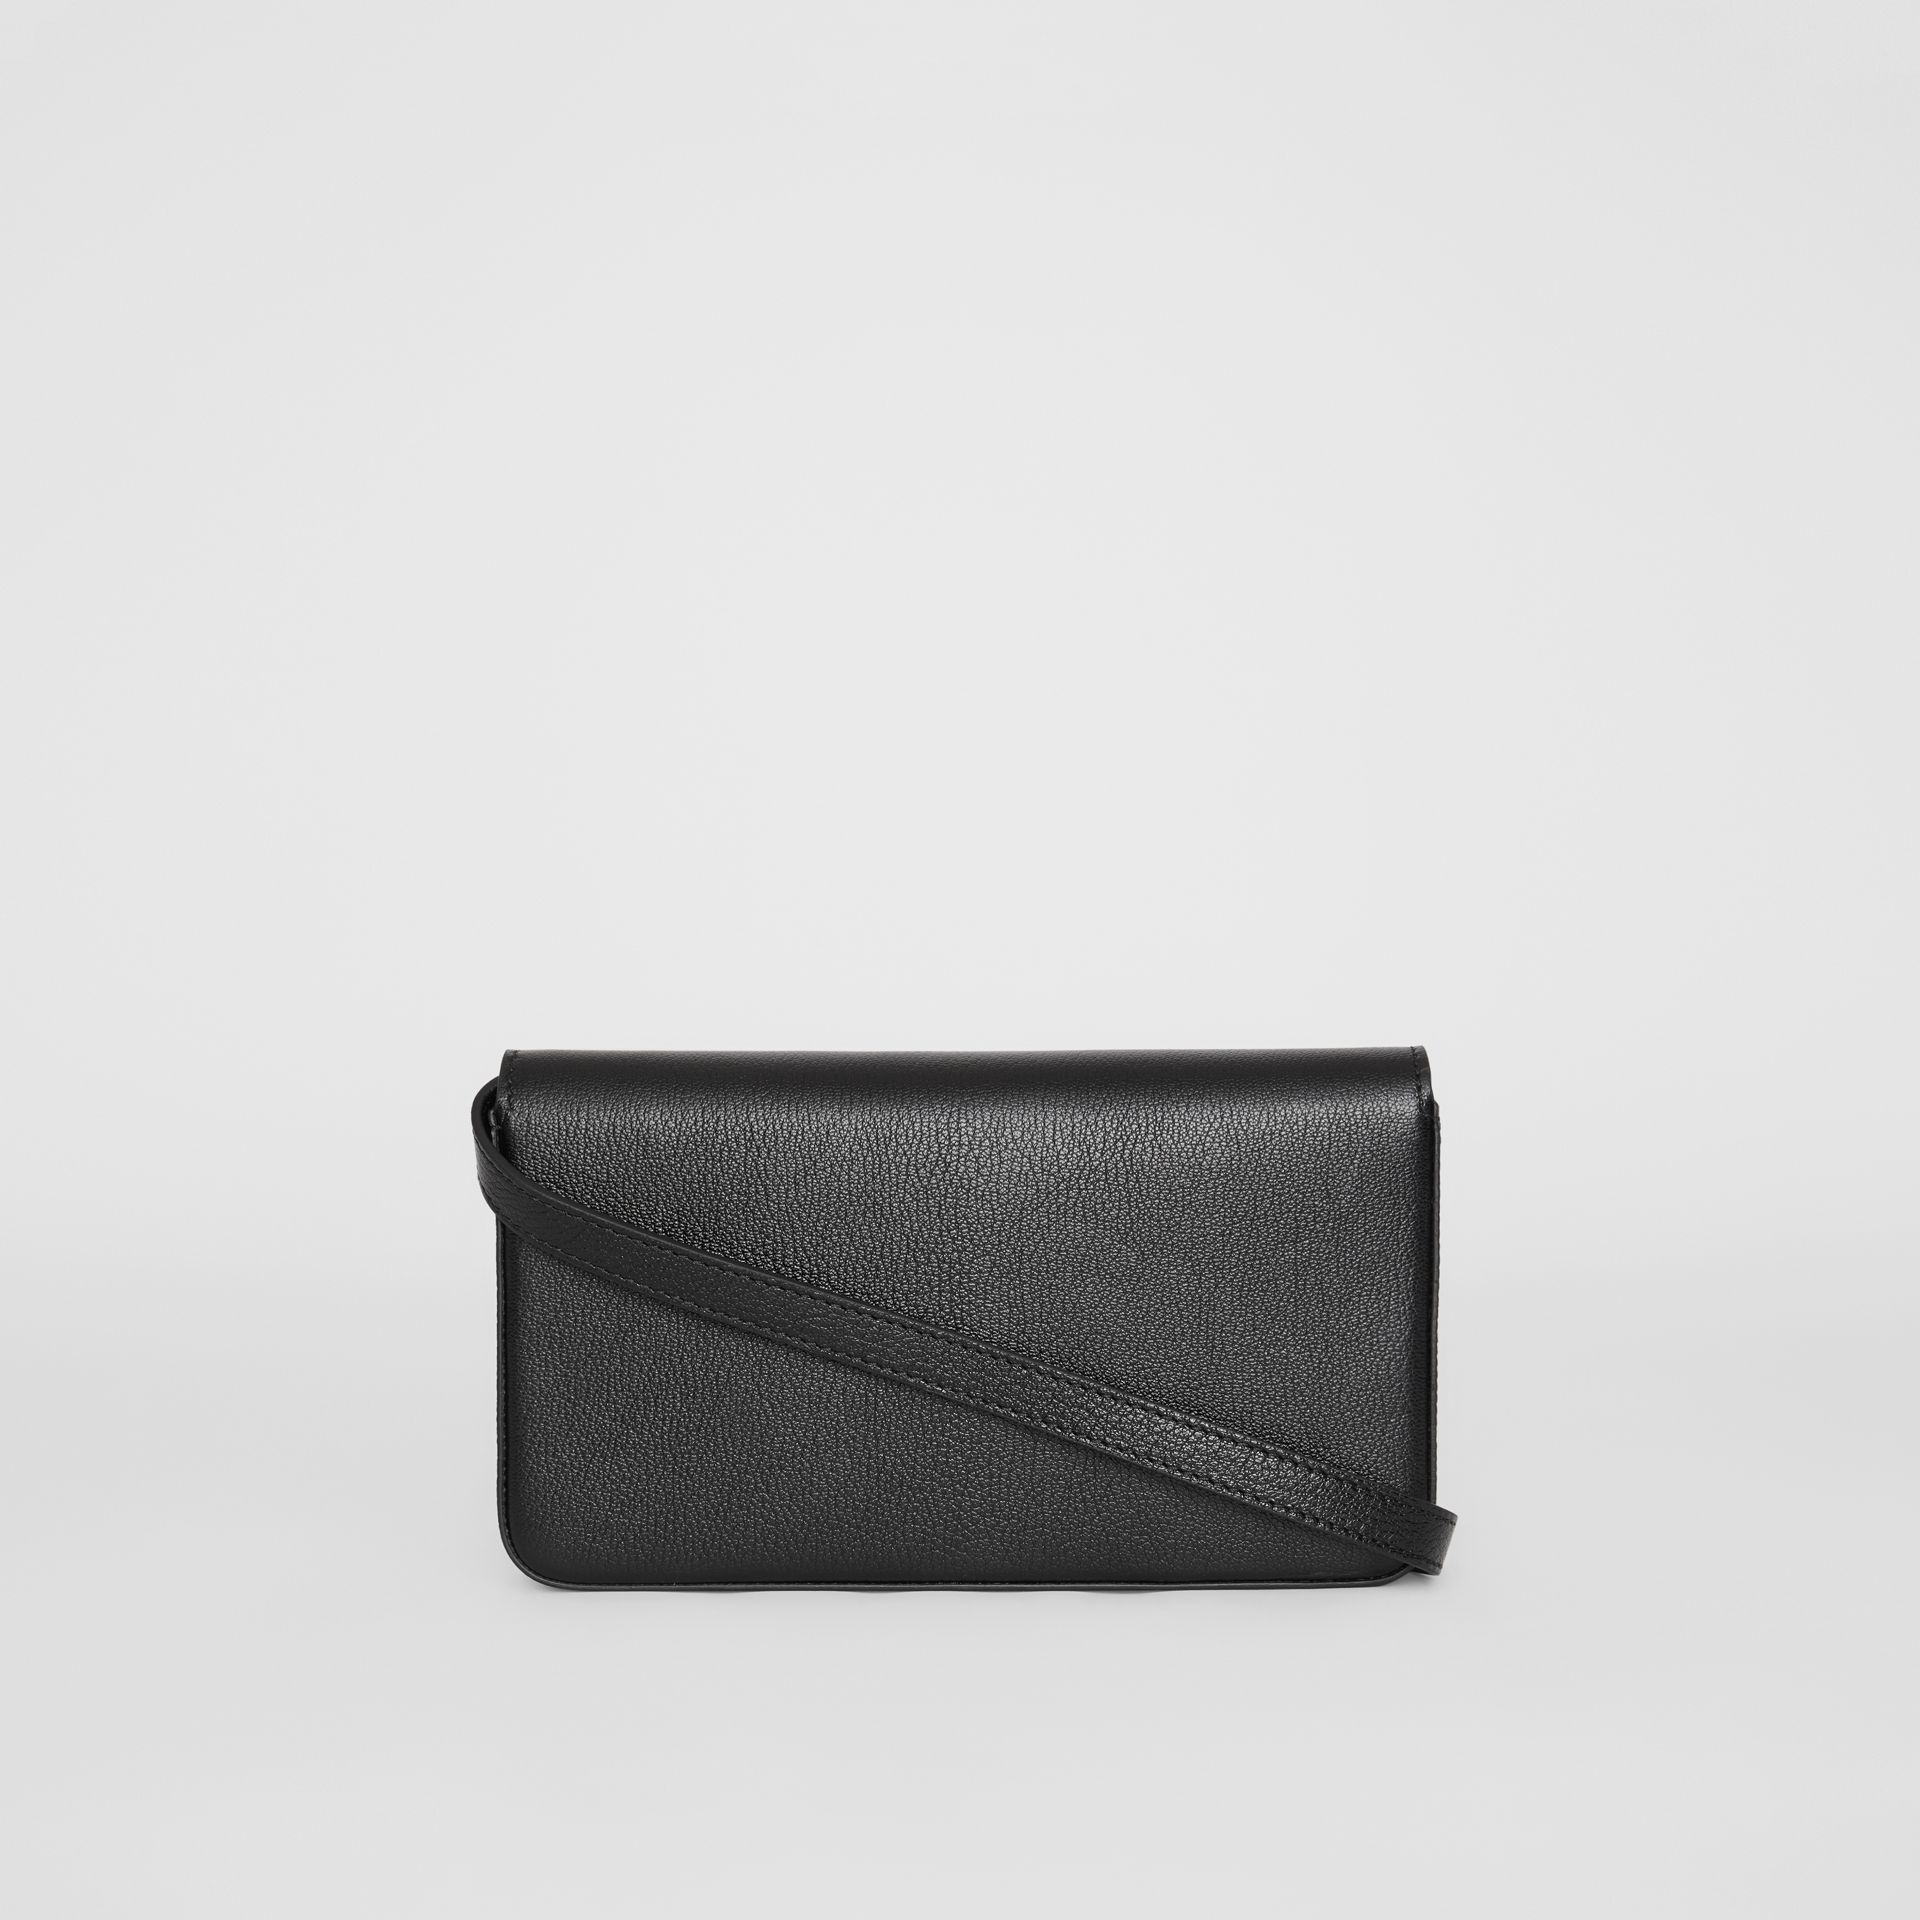 D-ring Leather Wallet with Detachable Strap in Black - Women | Burberry - gallery image 7